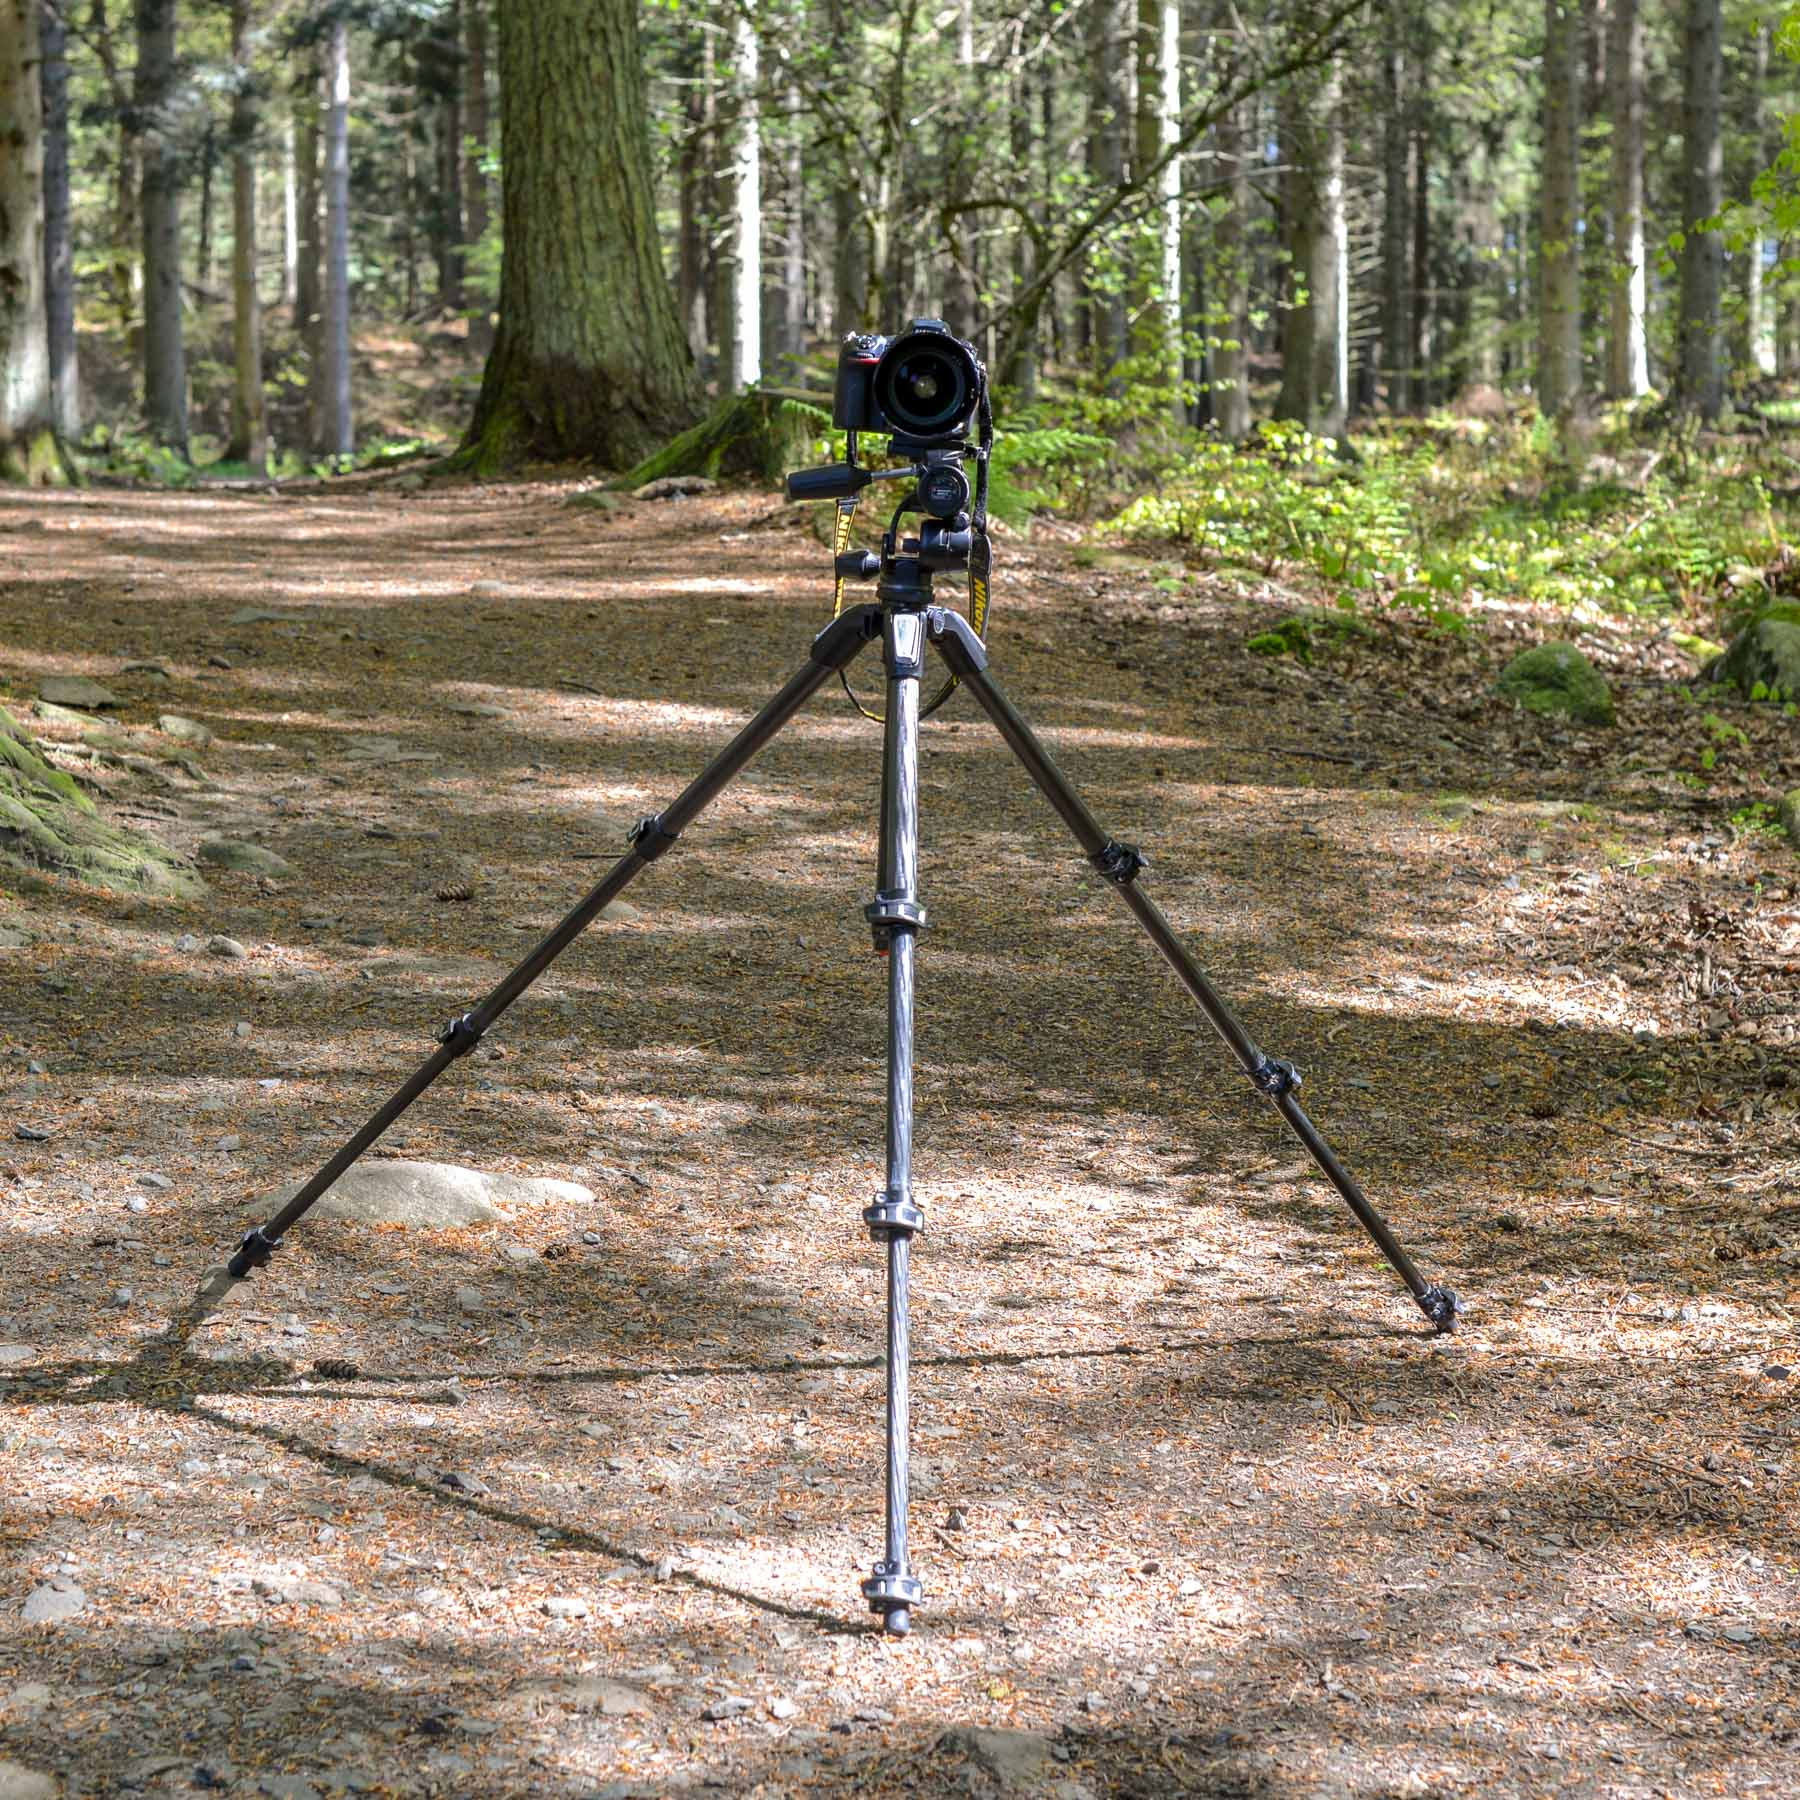 Widen the legs of the tripod for a more stable stance.